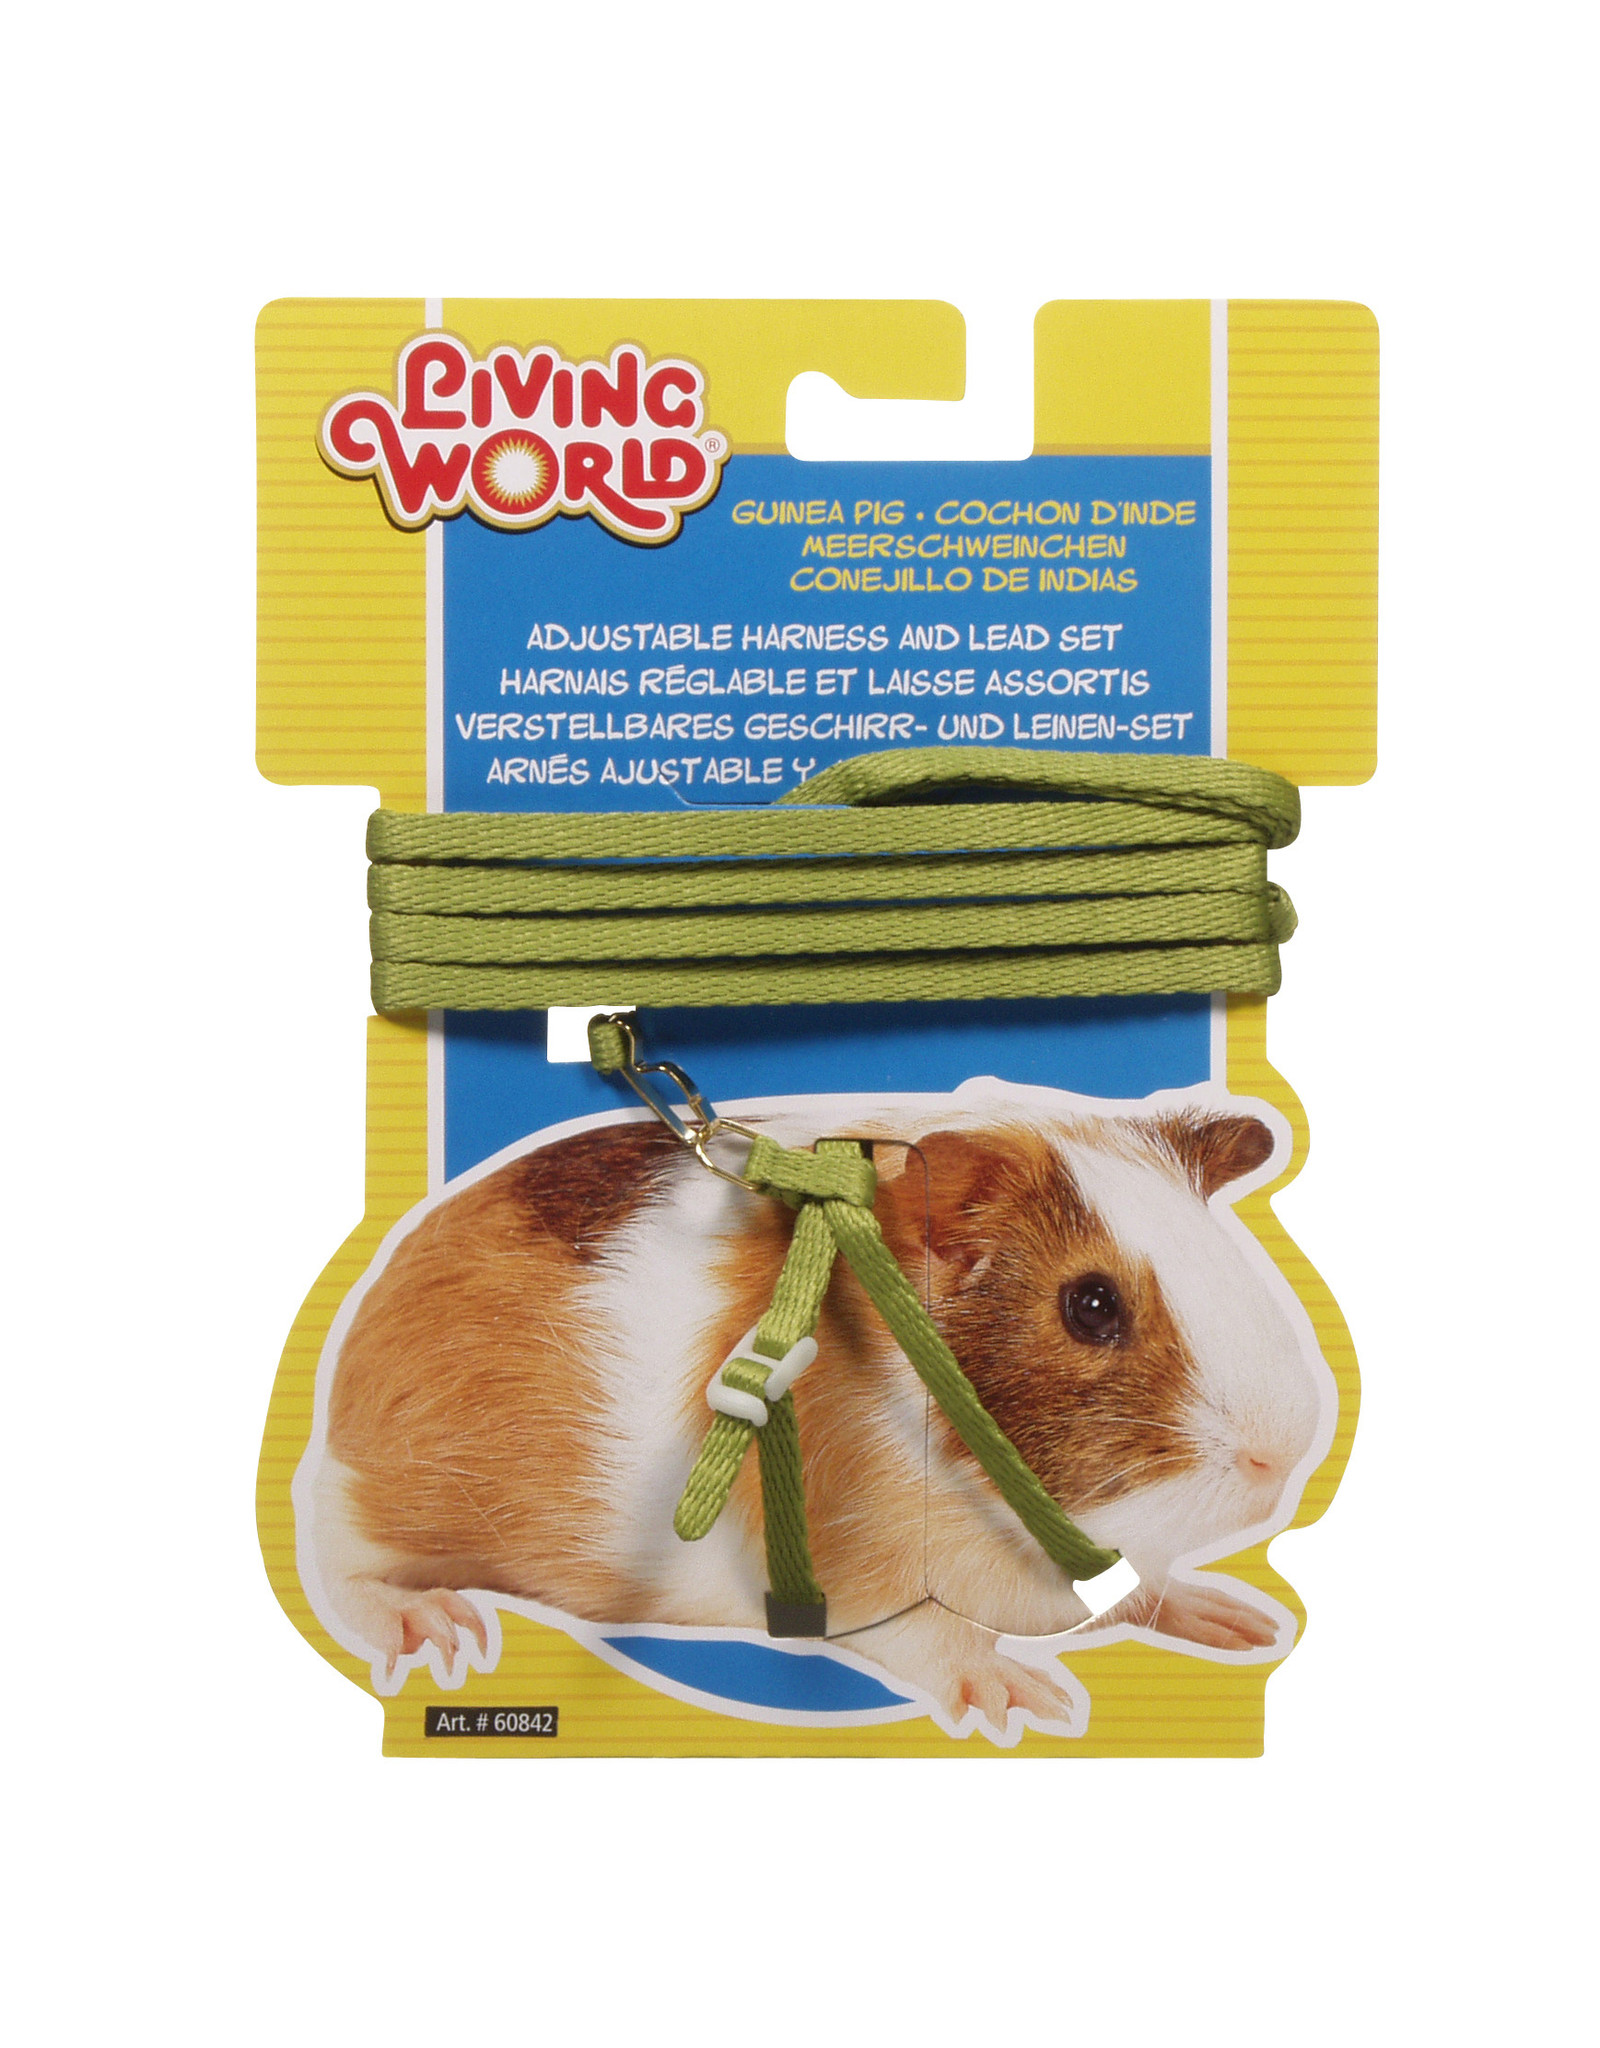 LW - Living World Living World Figure 8 Harness and Lead Set For Guinea Pigs